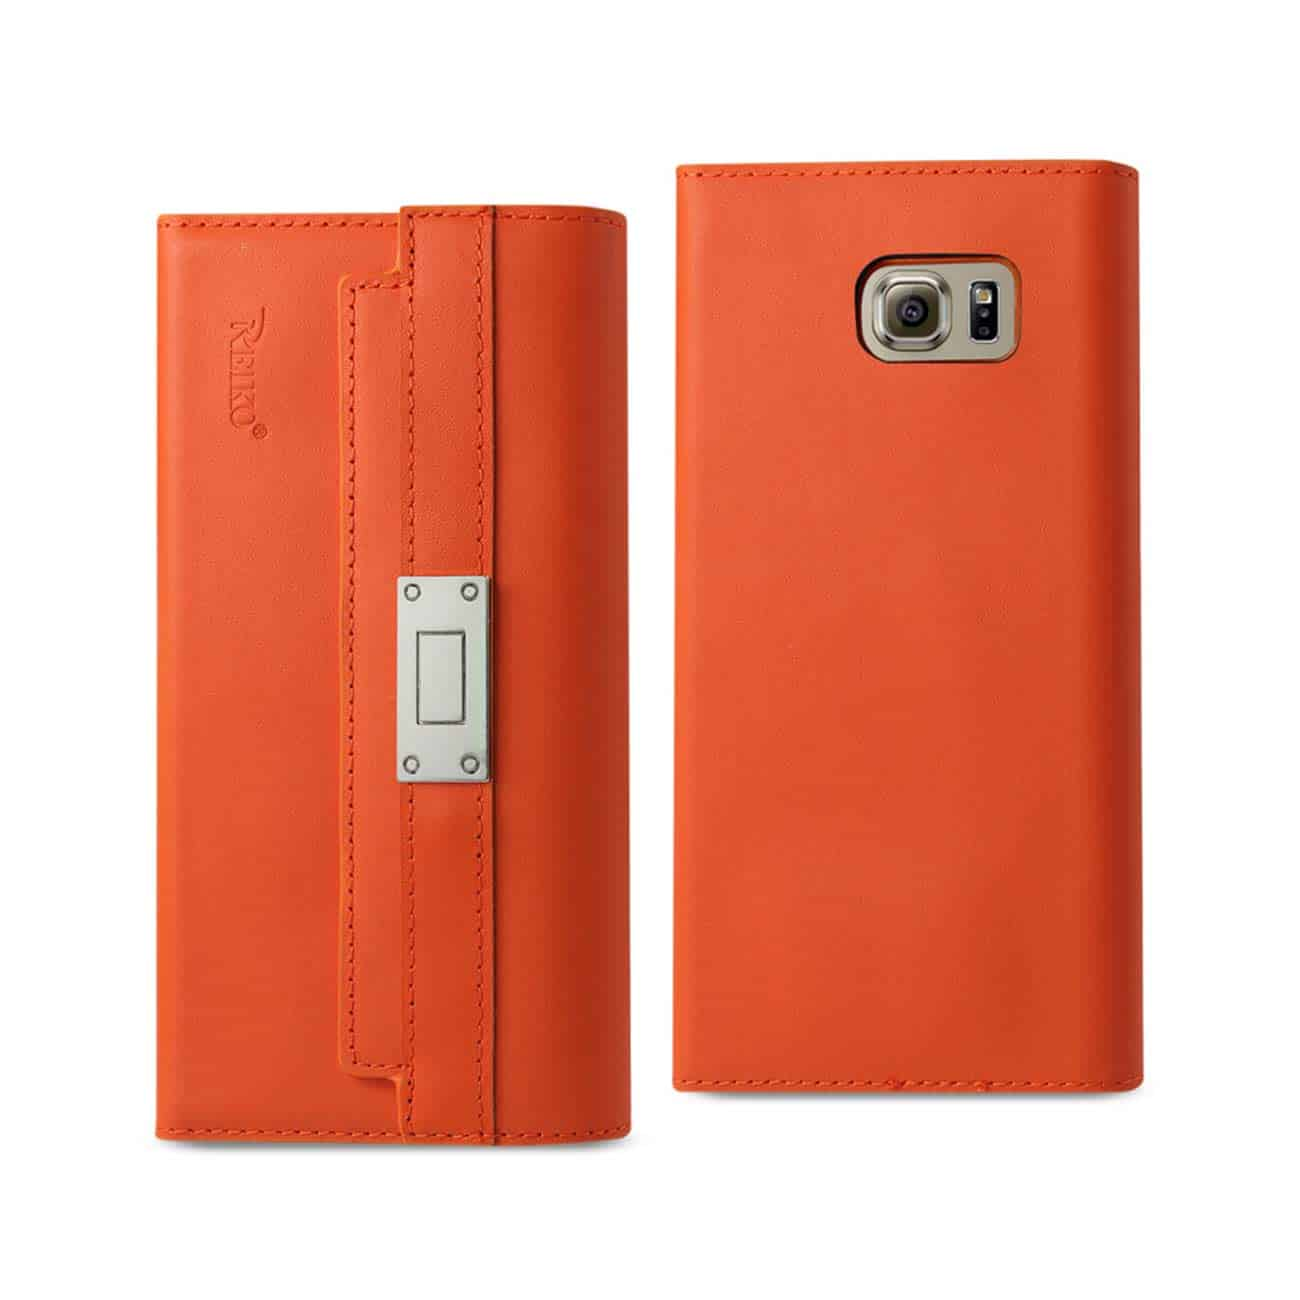 SAMSUNG GALAXY S6 GENUINE LEATHER RFID WALLET CASE AND METAL BUCKLE BELT IN TANGERINE